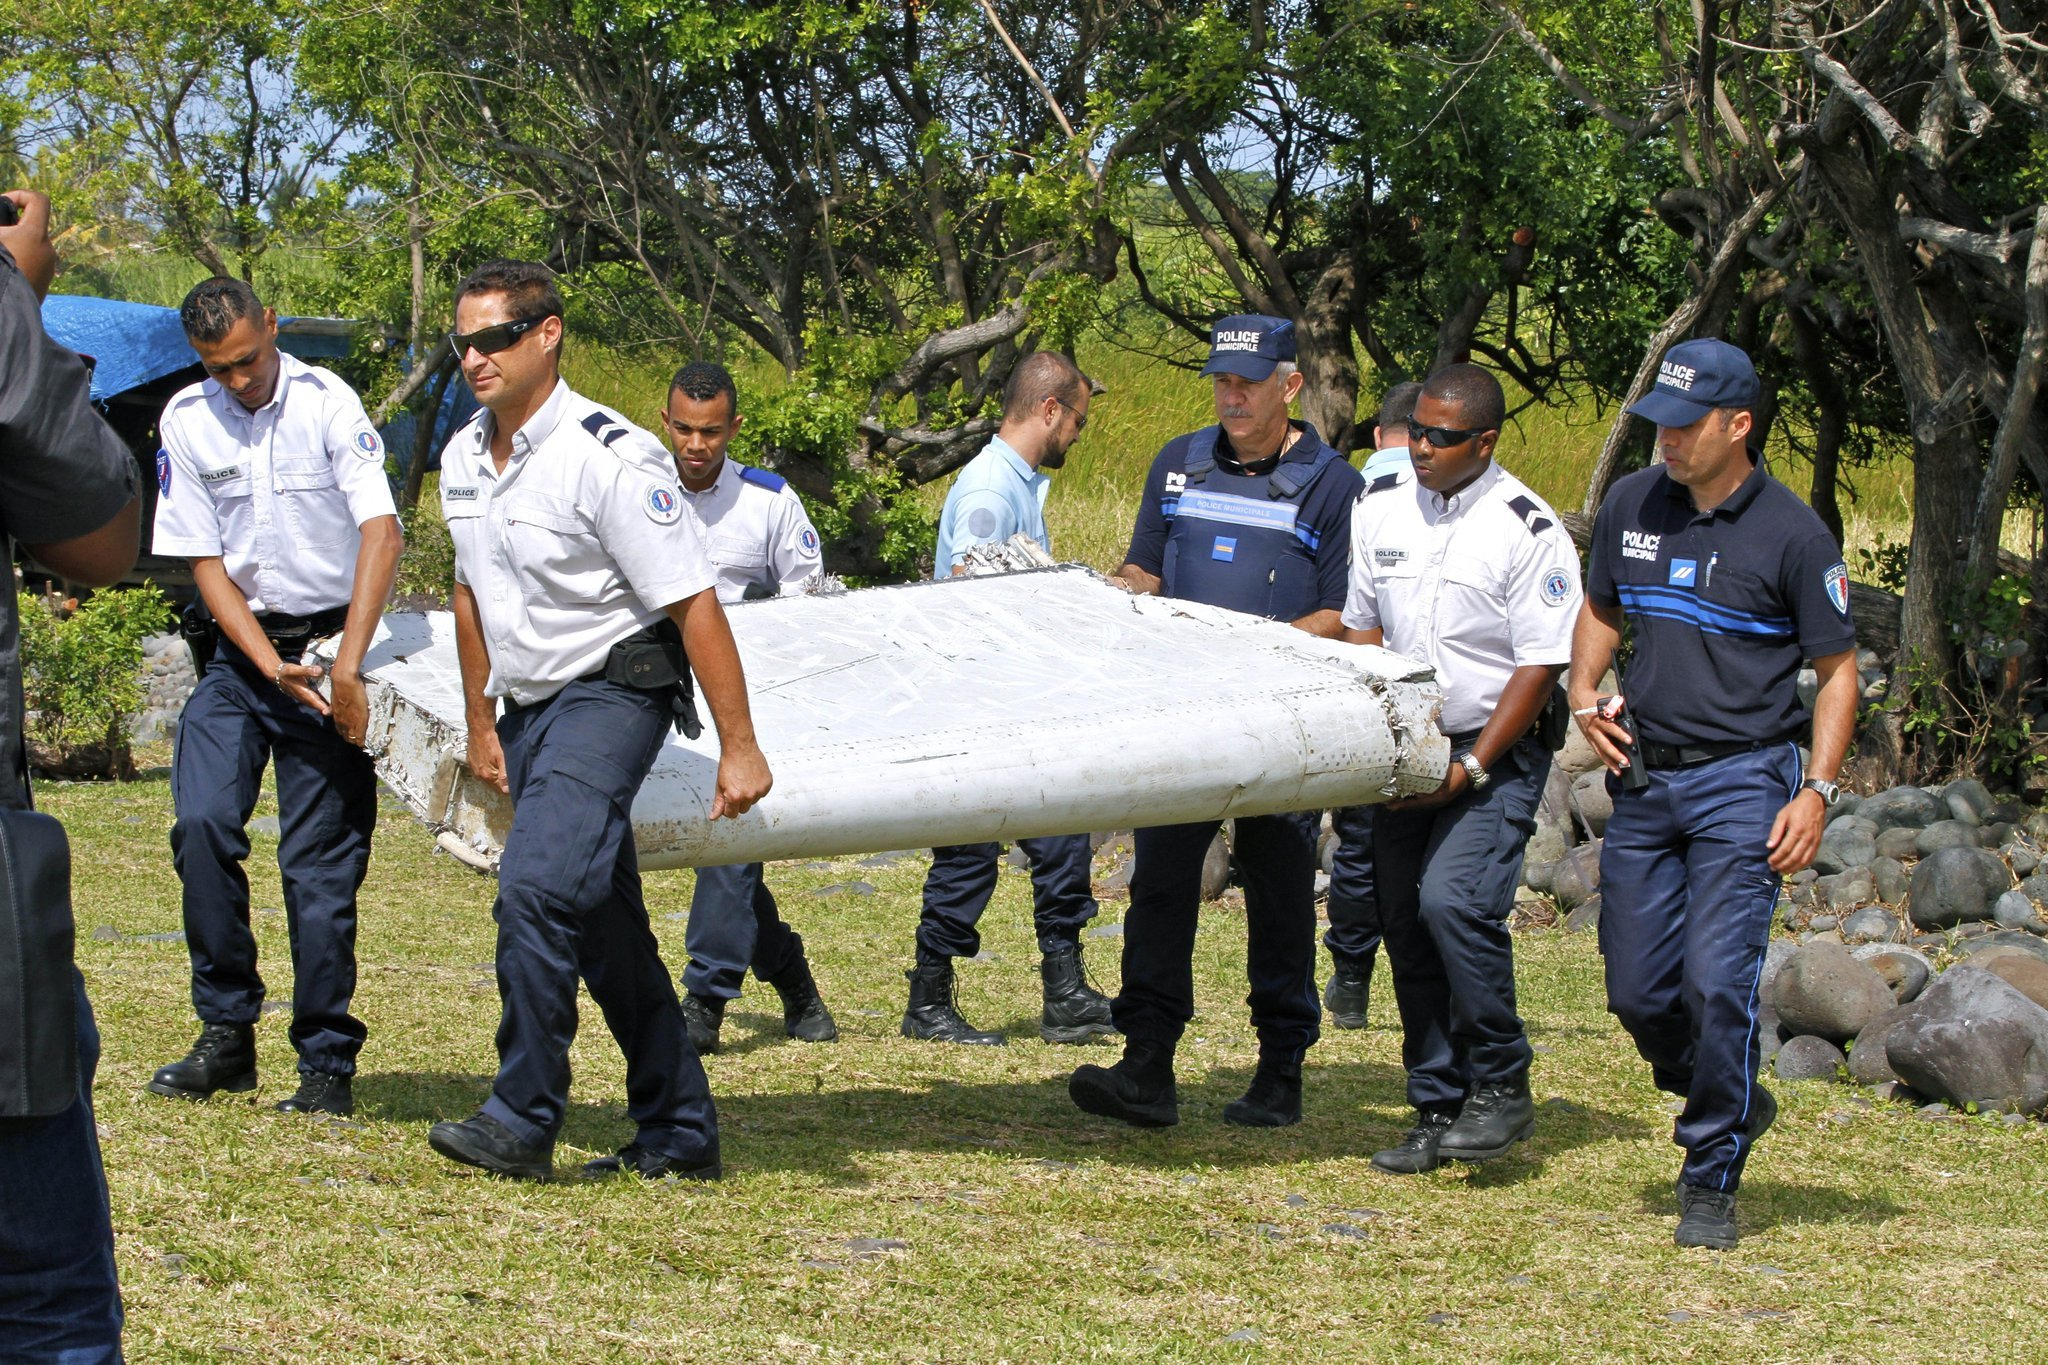 Debris may belong to missing Malaysia Airlines jet